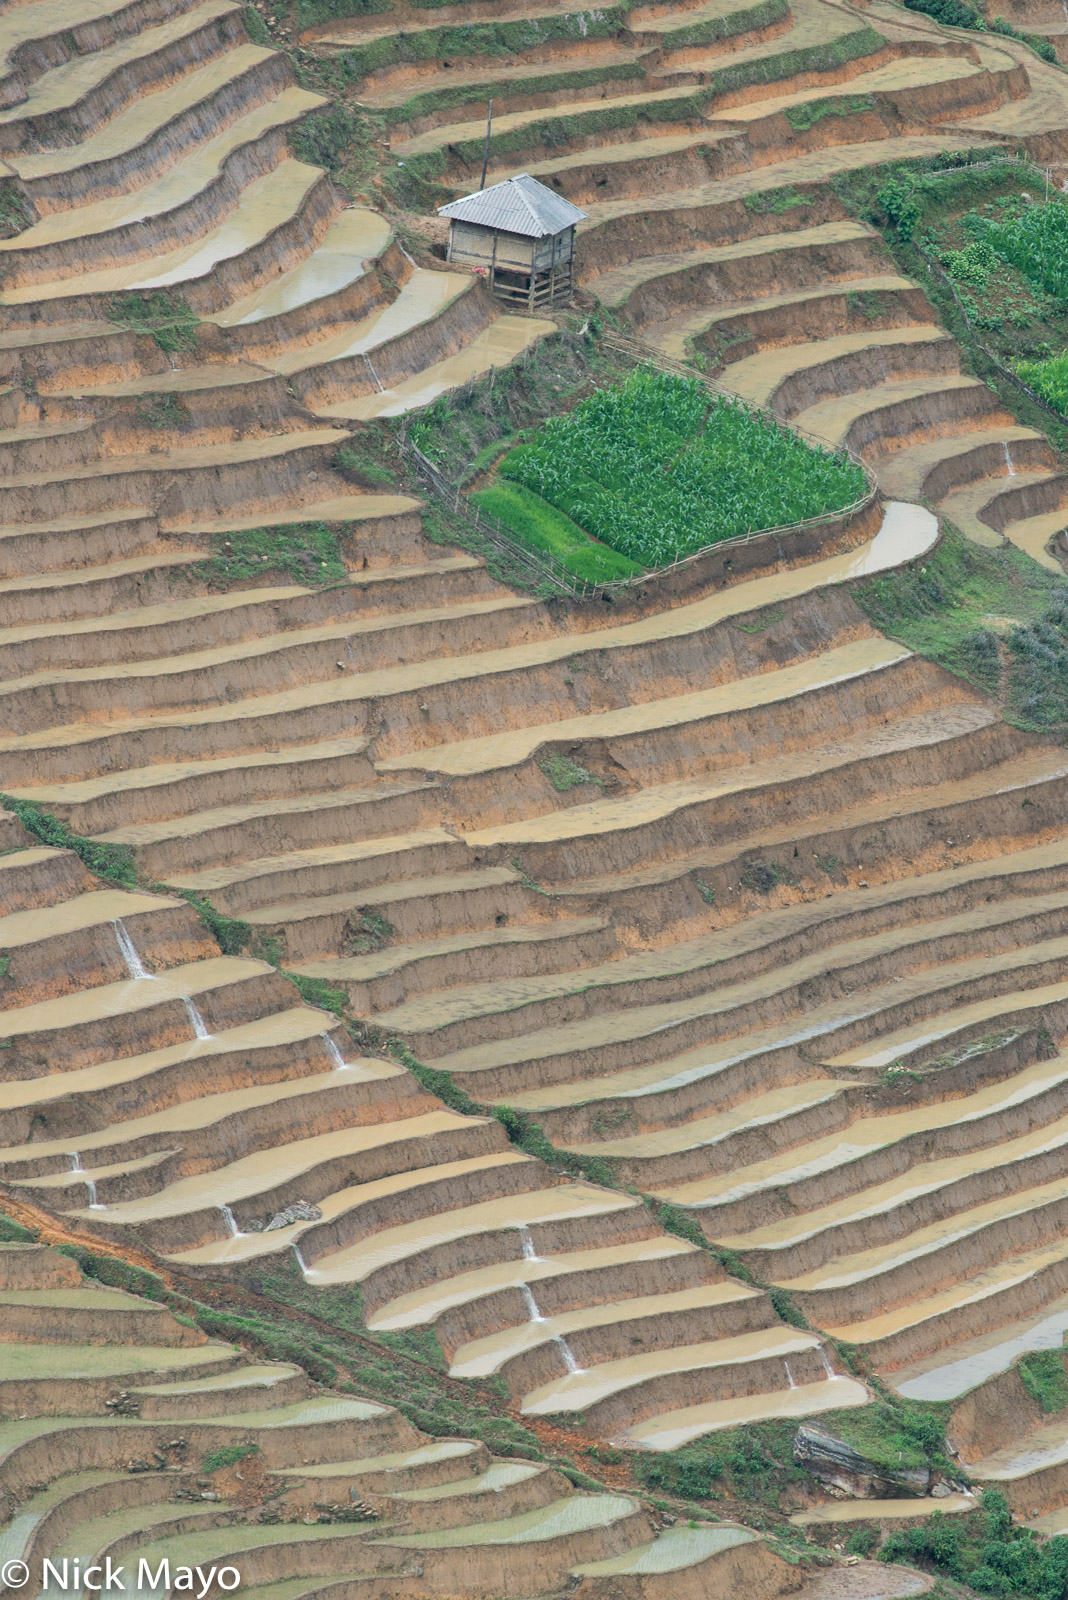 Terraces flooded for planting near Y Ty.